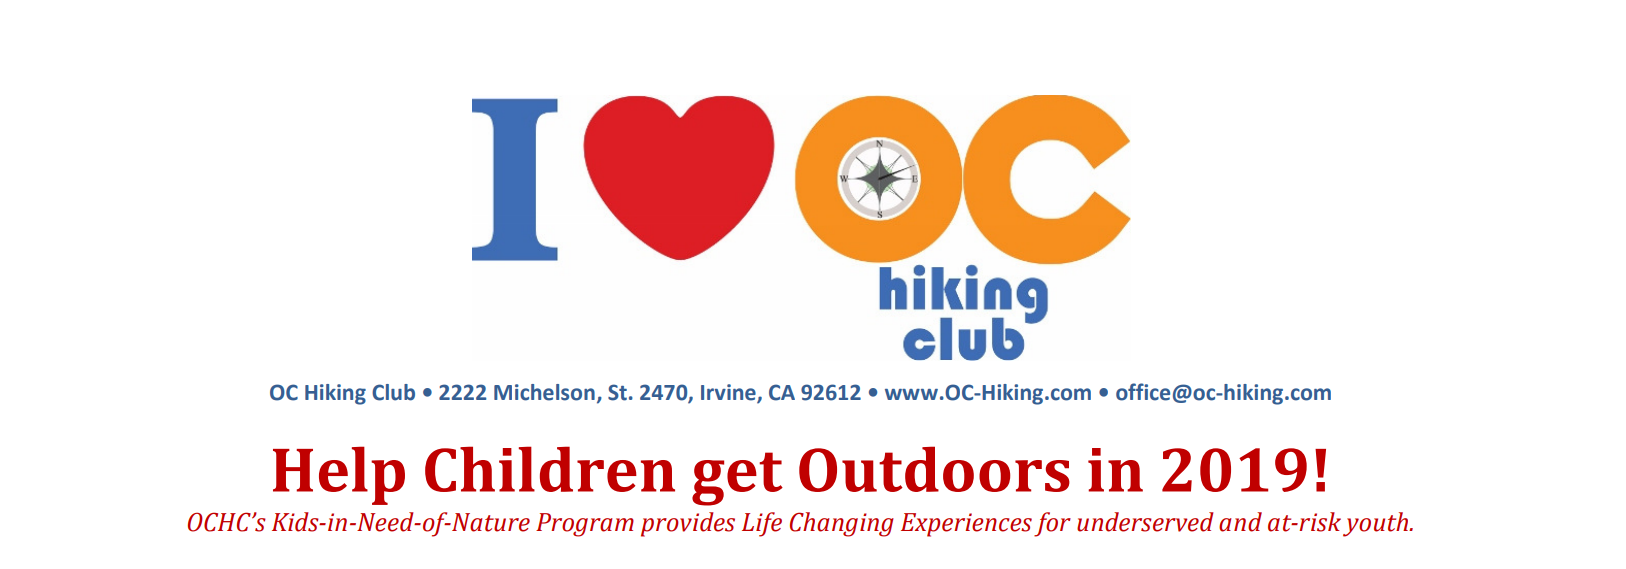 Help to Get More Children Outdoors in 2019